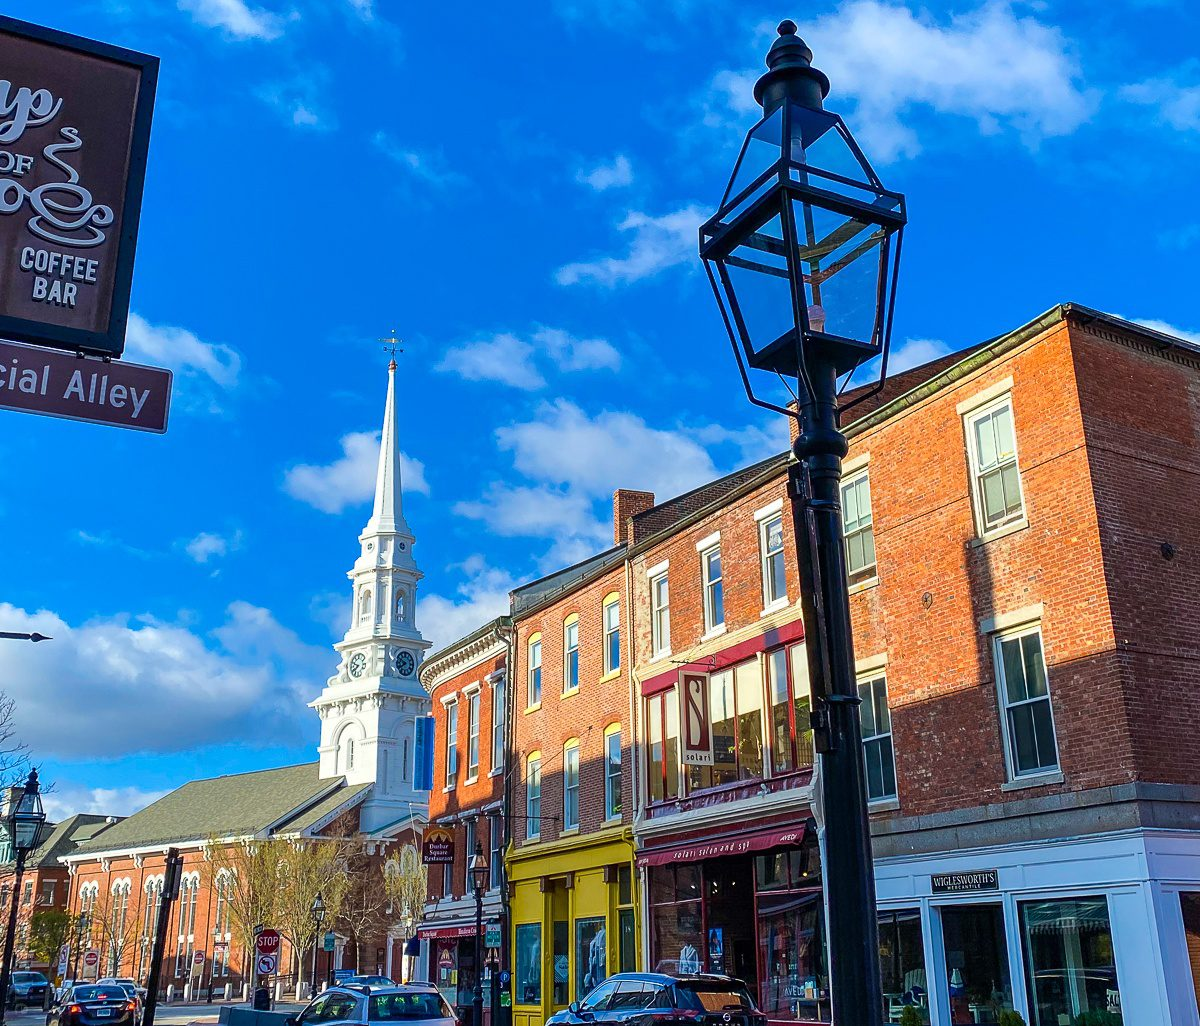 Portsmouth, NH is full of cute shops and restaurants.